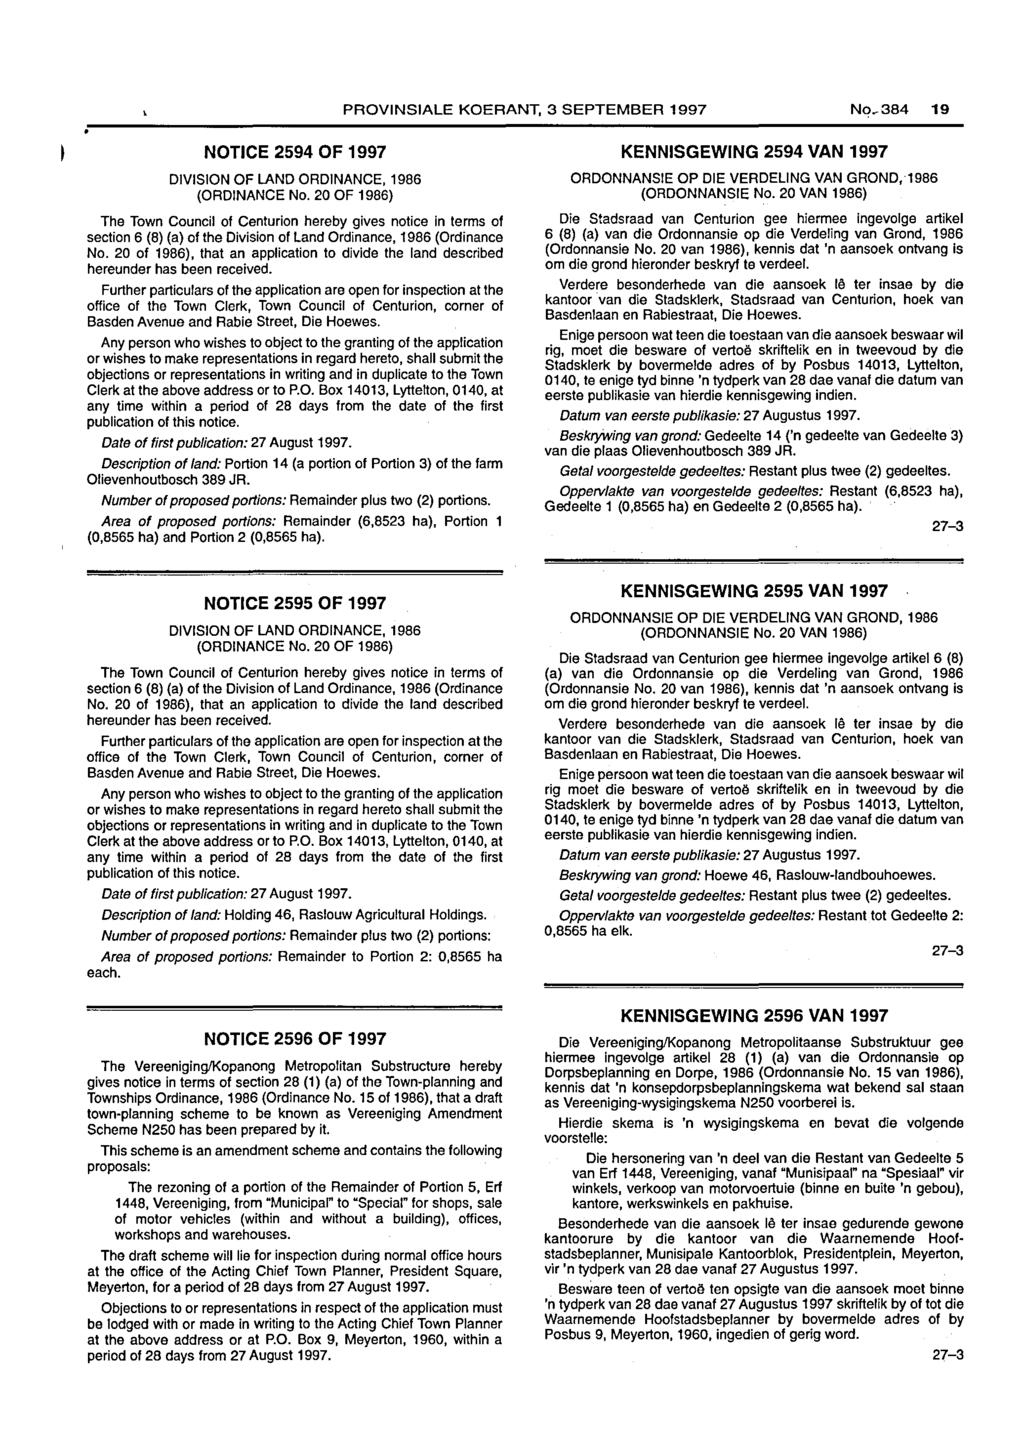 PROVINSIALE KOERANT, 3 SEPTEMBER 1997 No~ 19 NOTICE 2594 OF 1997 DIVISION OF LAND ORDINANCE, 1986 (ORDINANCE No.